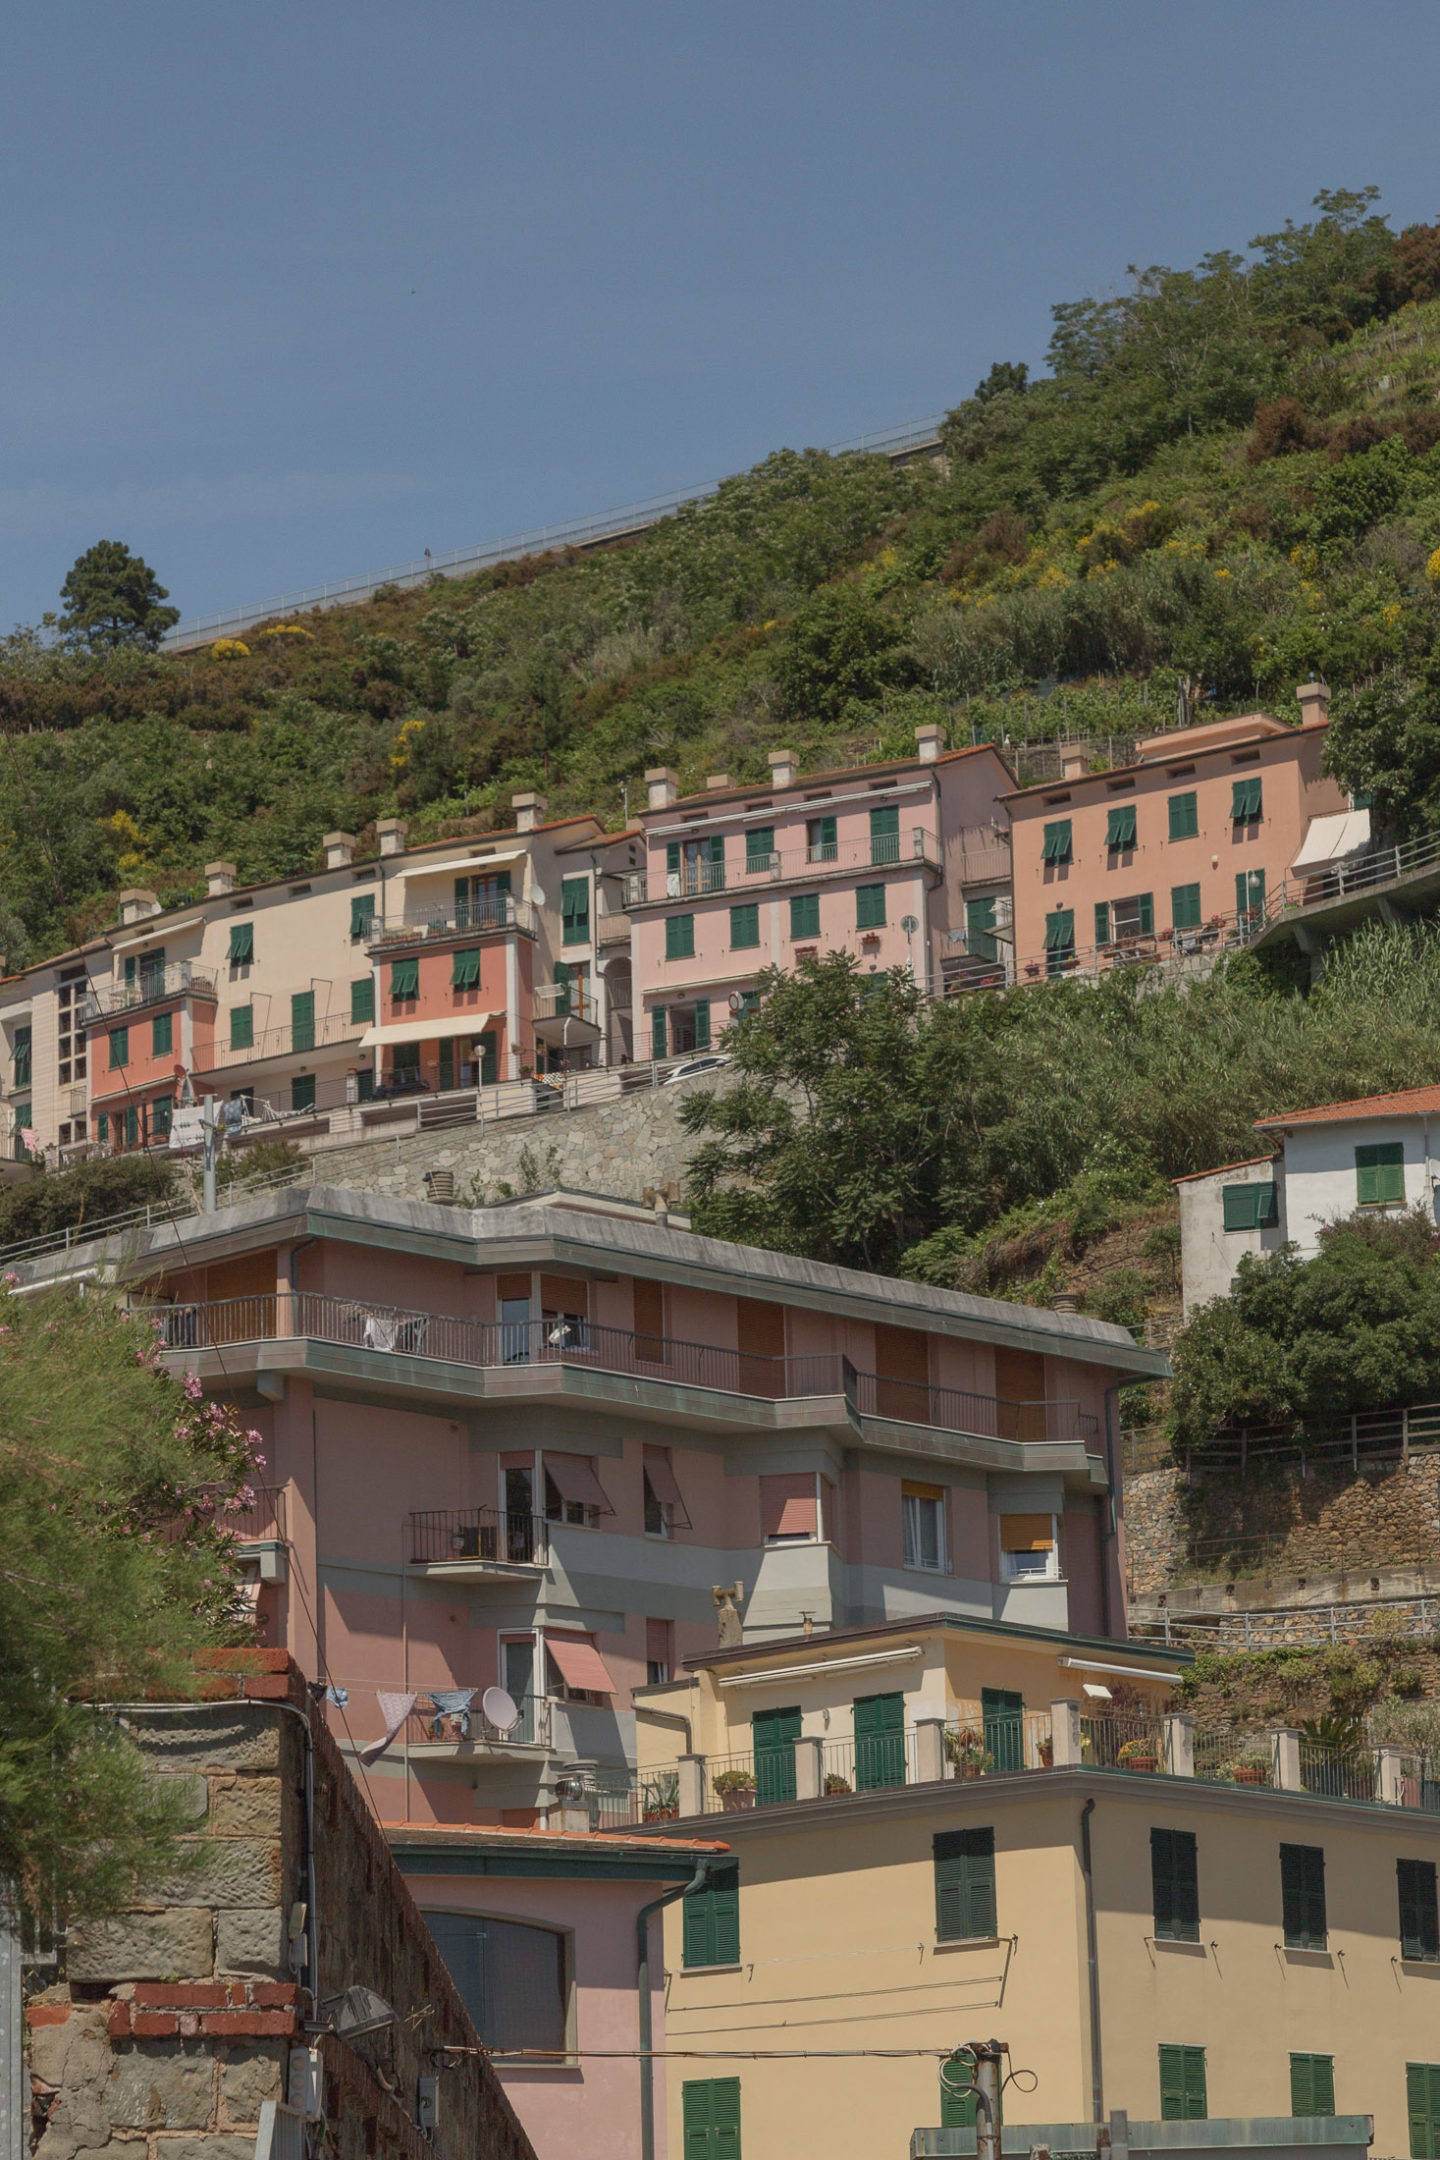 pinkish pastel buildings against green hill and blue sky